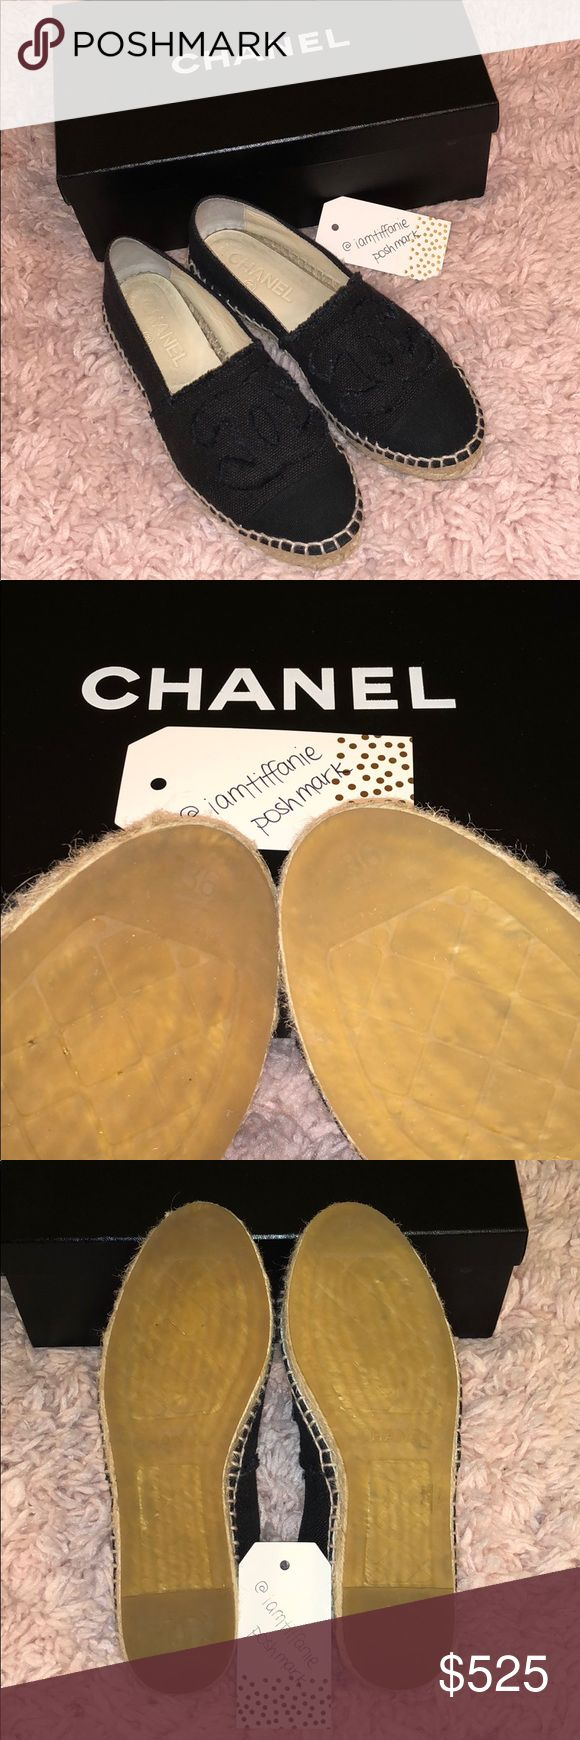 CHANEL ESPADRILLES AUTHENTIC, Black Canvas, size 36. Worn a handful of times, in great condition. Originally purchased at NM for $525 +tax, receipt as shown (will be keeping). Priced according to current resale rate. NO TRADES.  The price is FIRM. CHANEL Shoes Espadrilles